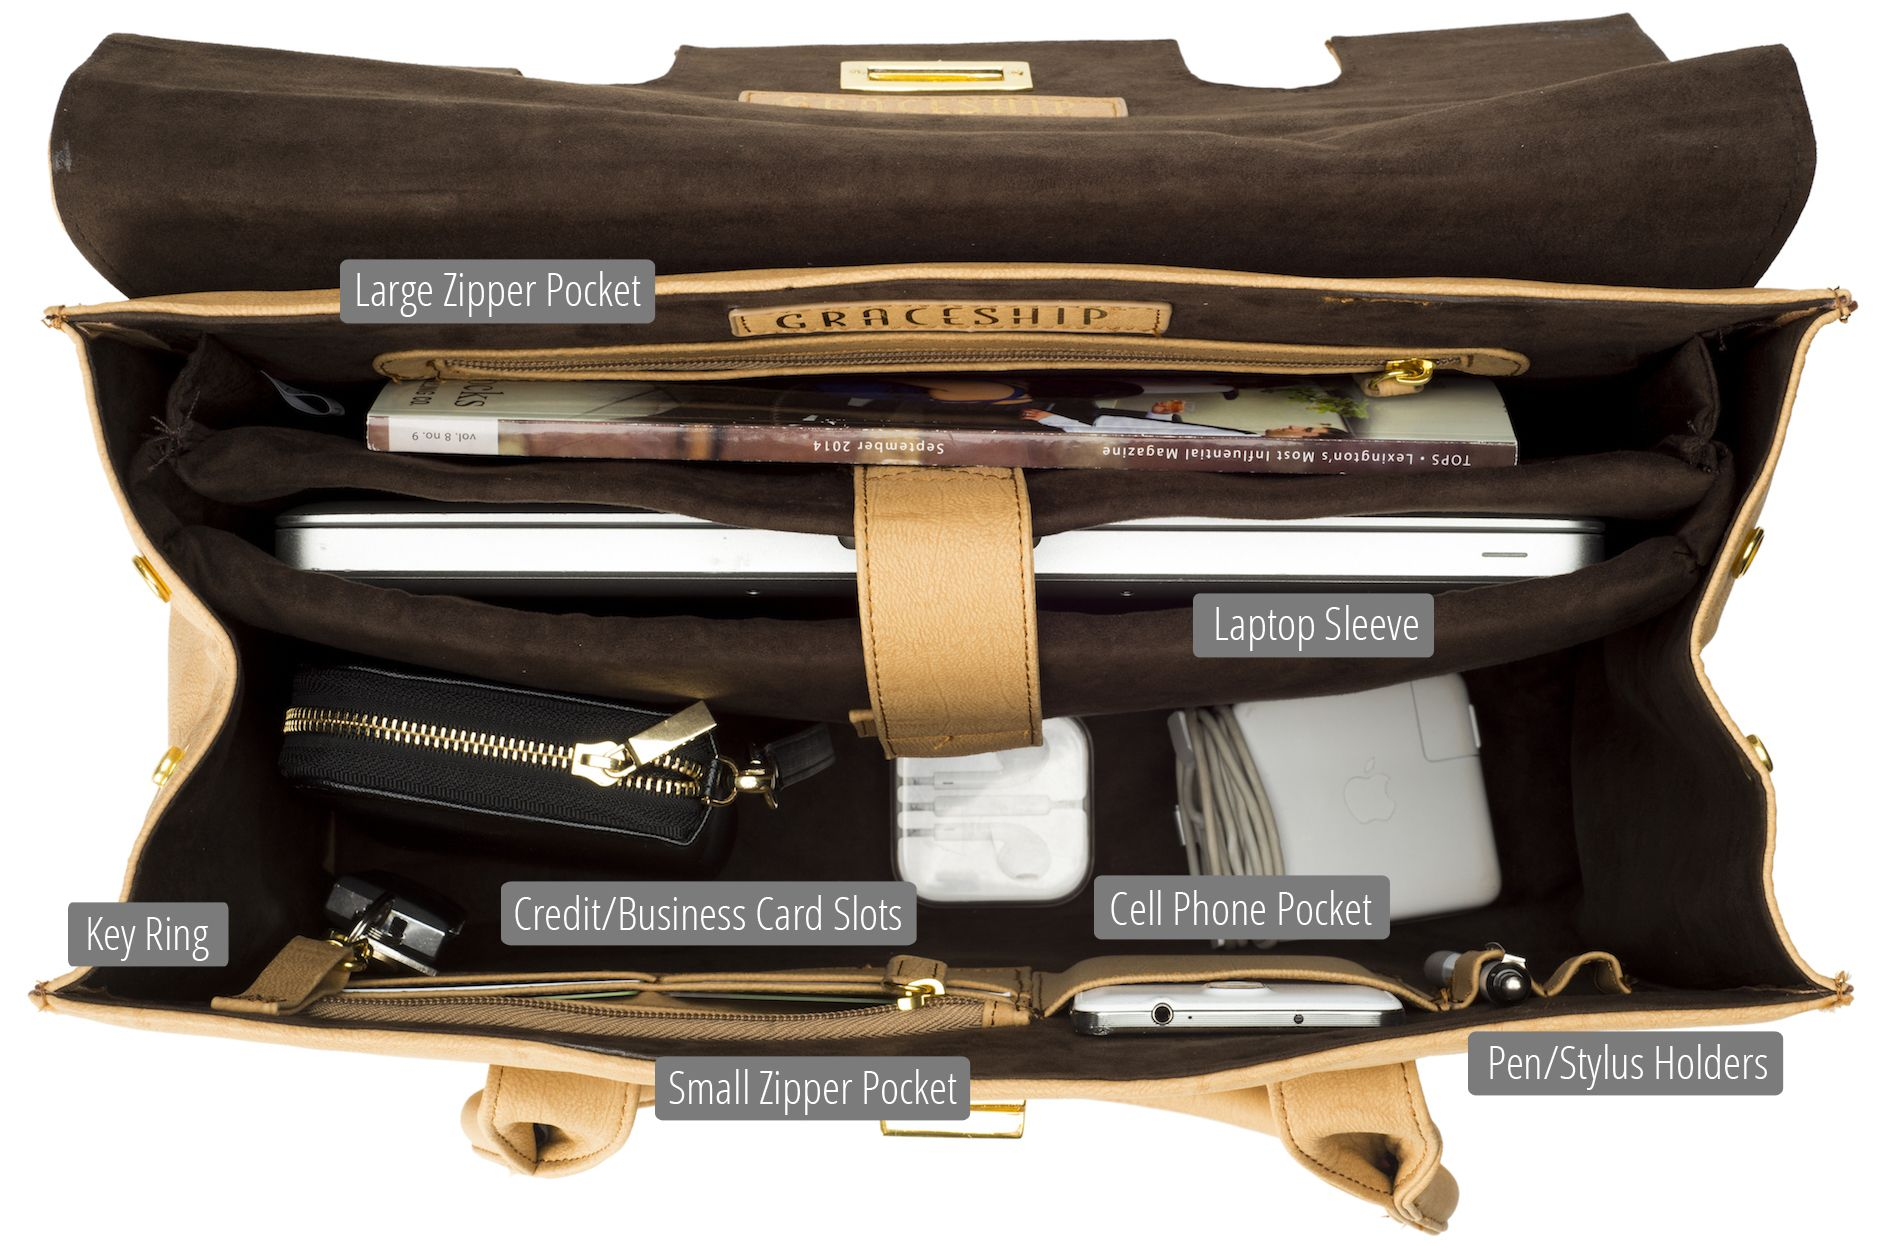 96acff67c05 GRACESHIP offers women s laptop bags and women s briefcases that are both  fashionable and functional! Travel and commute Gracefully!